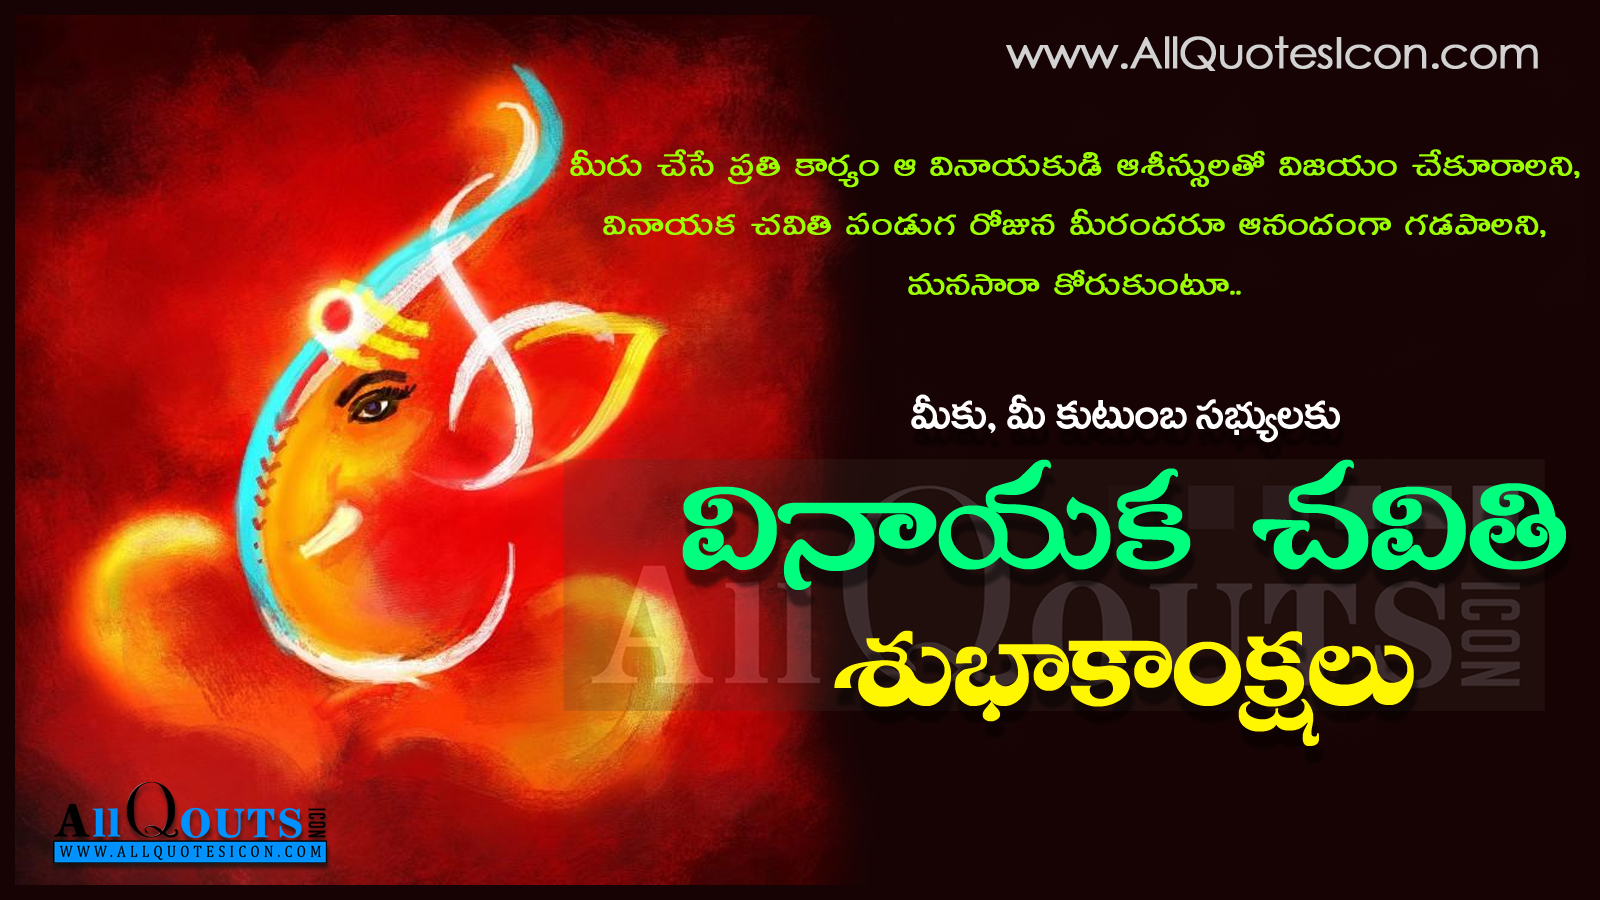 Happy Vinayaka Chaturthi Quotations And Greetings In Telugu With